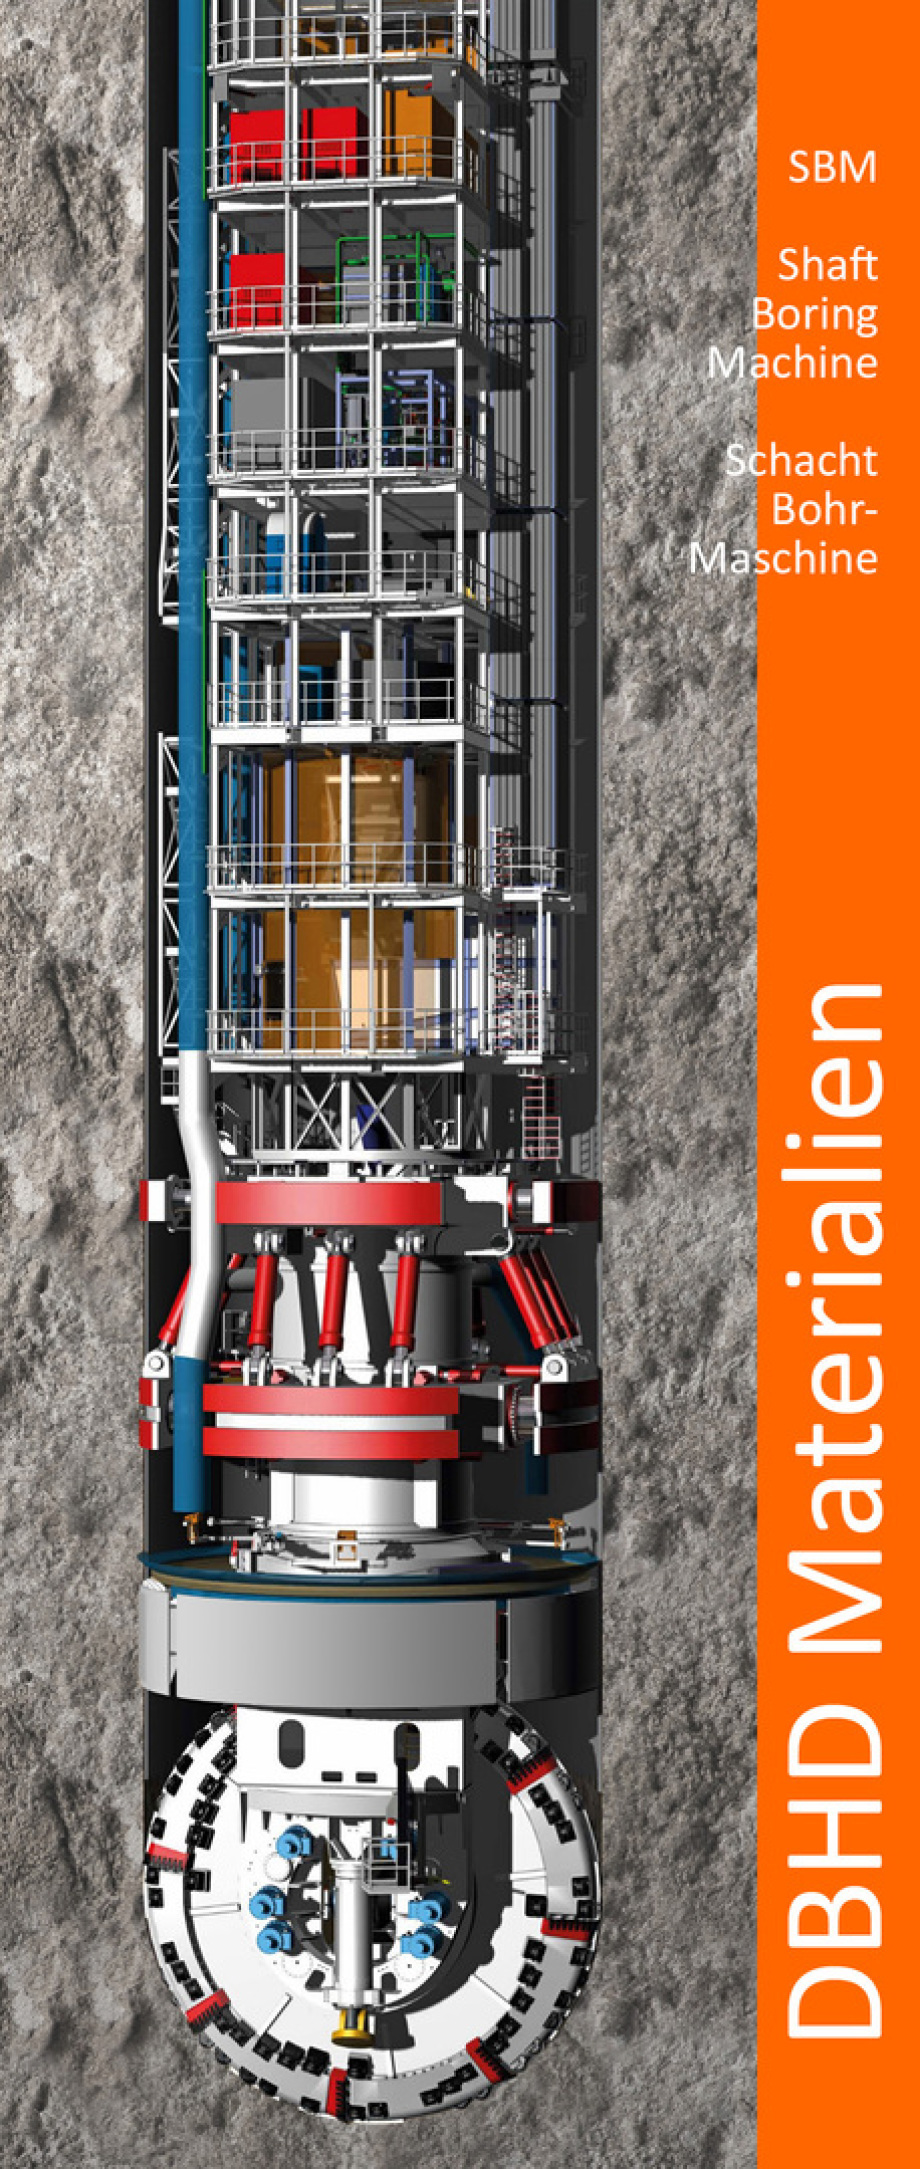 SBM - Shaft Boring Machine - cost 50 Mio. EUR - 2 years delivery time - goes down -2.000 to -3.000 Meters - 2 different specifications